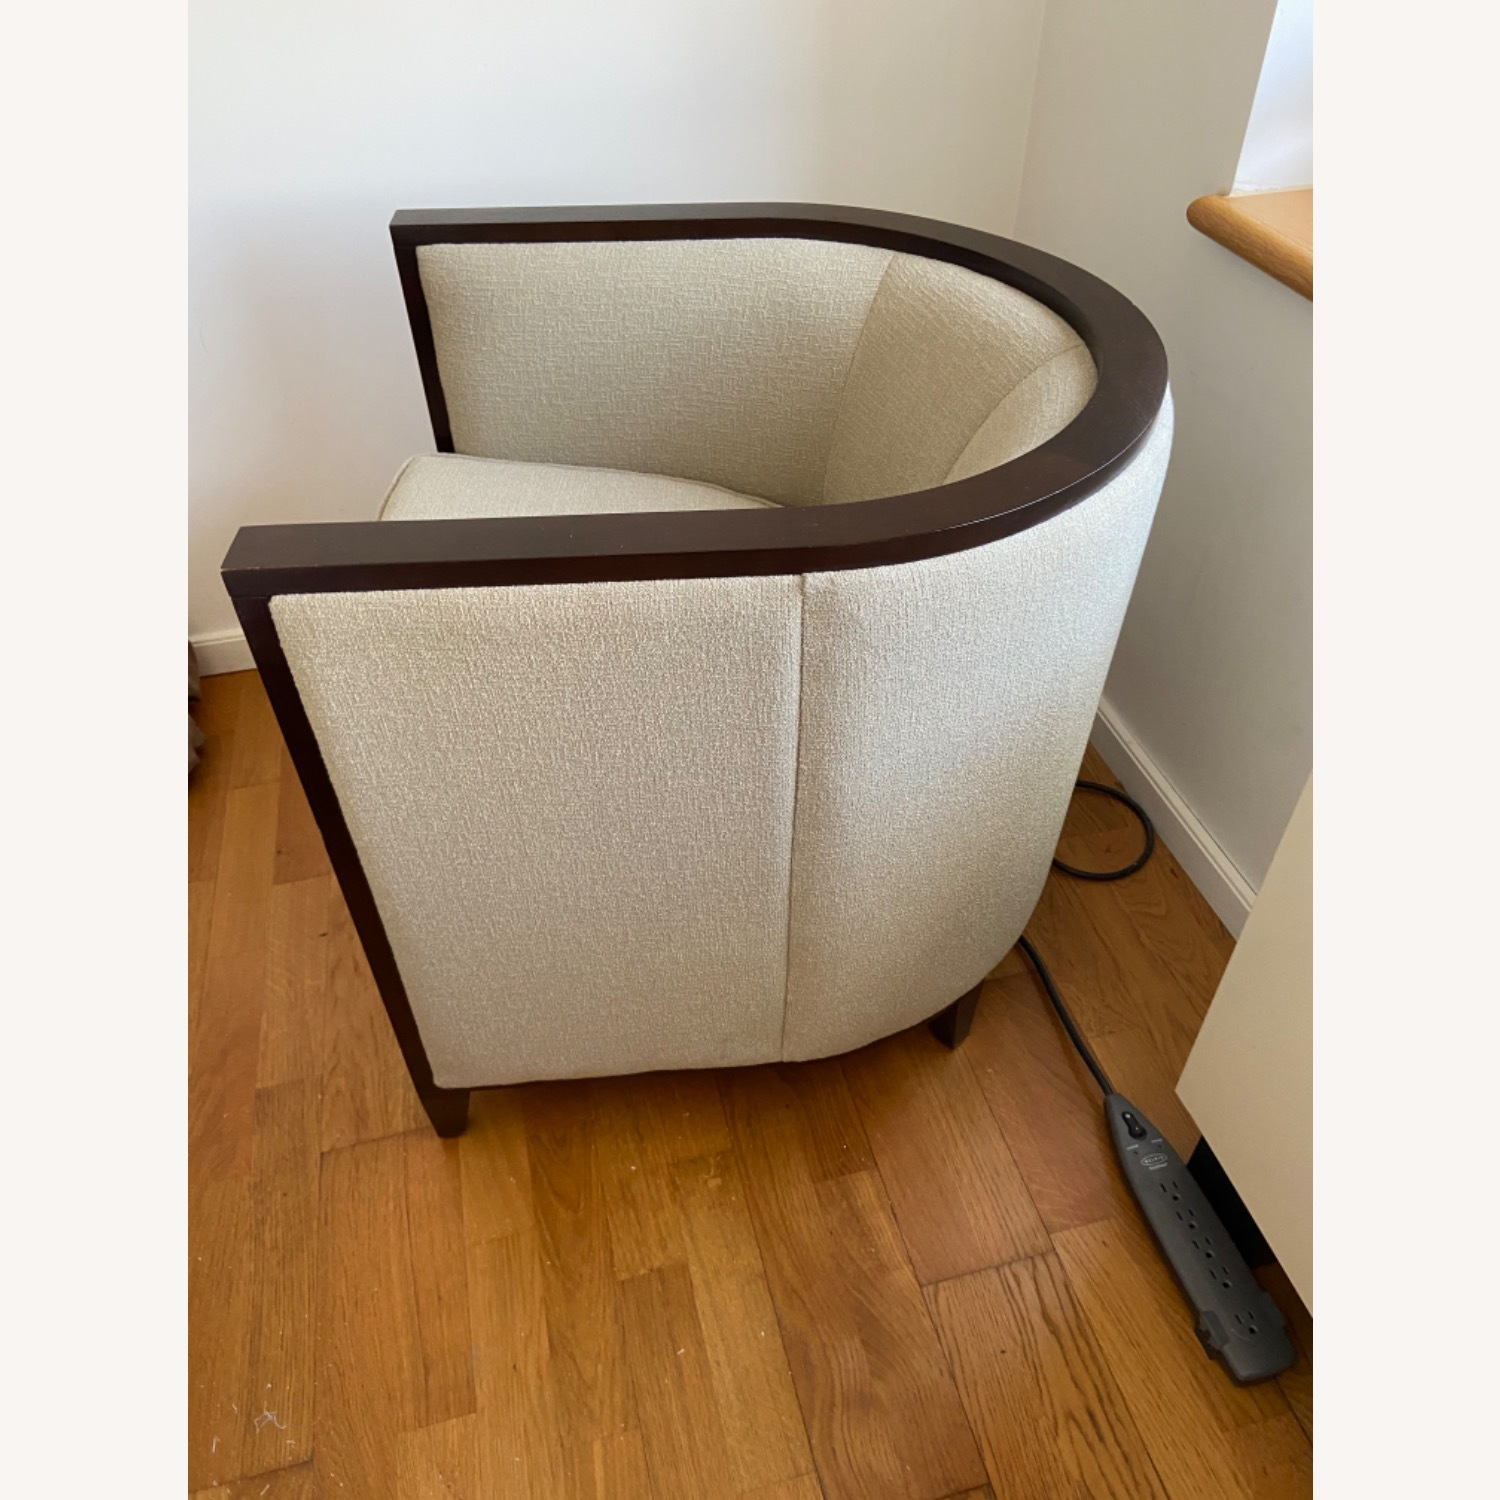 Better by Design Made USA Chair - image-1